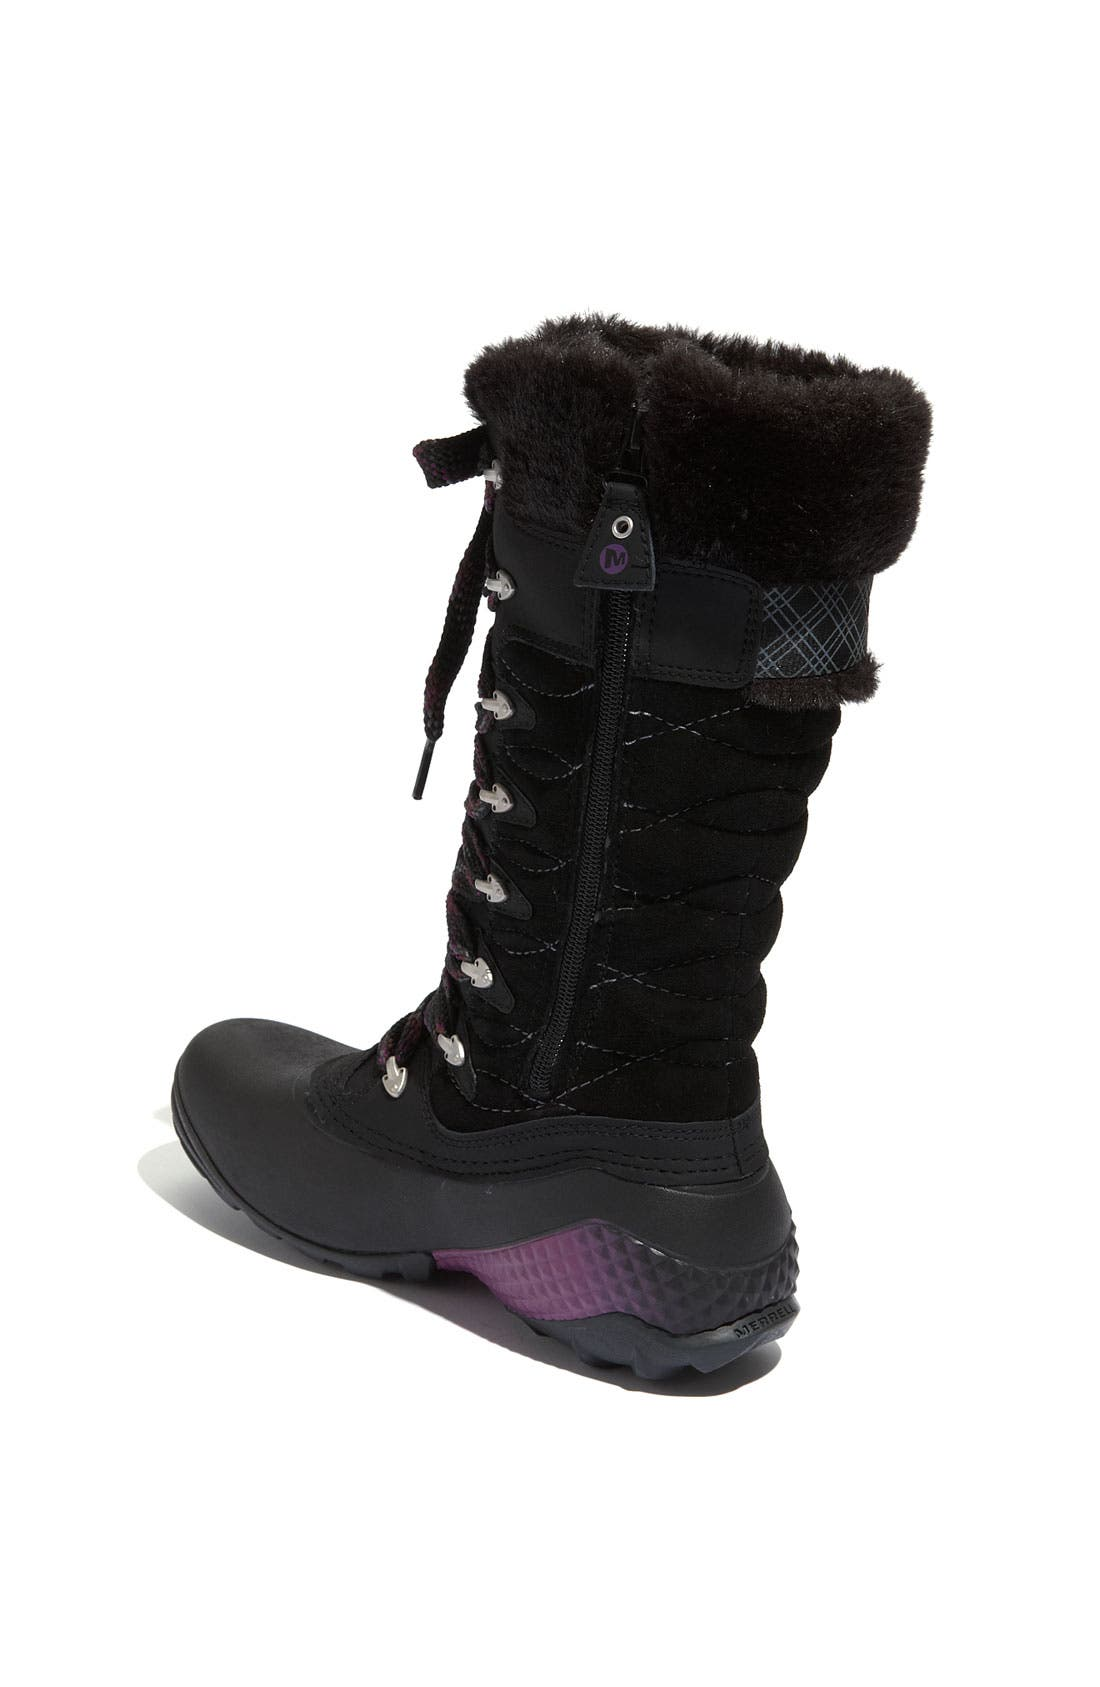 'Winterbelle Peak' Waterproof Boot,                             Alternate thumbnail 4, color,                             001